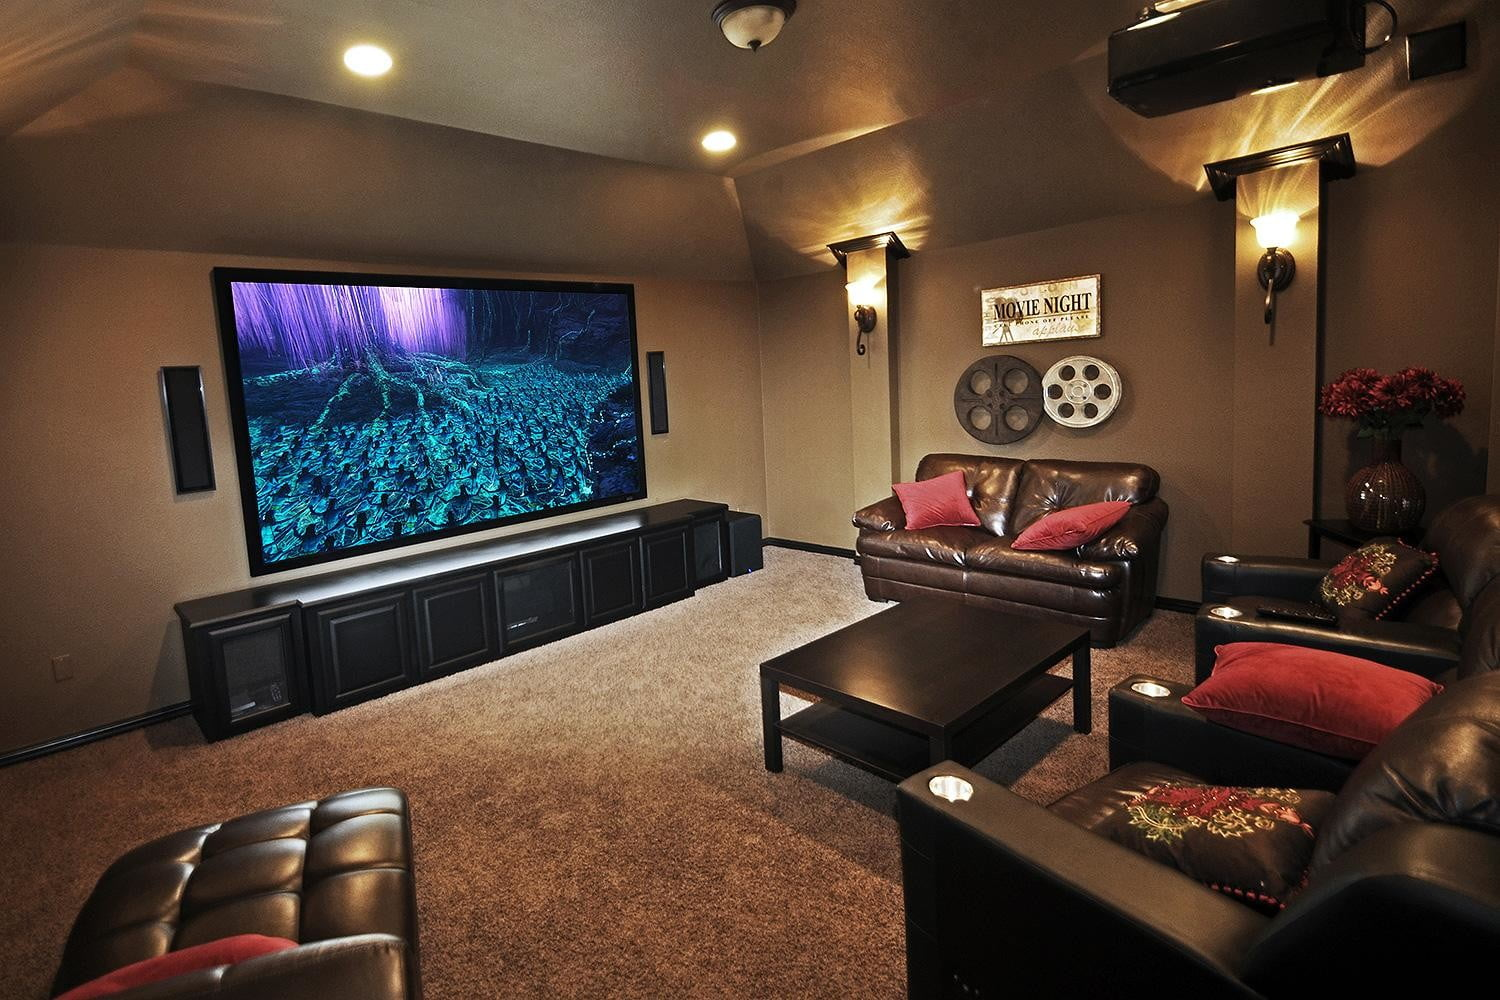 No Remortgage Needed How To Build An Earthquake Inducing Home Theater For 3 000